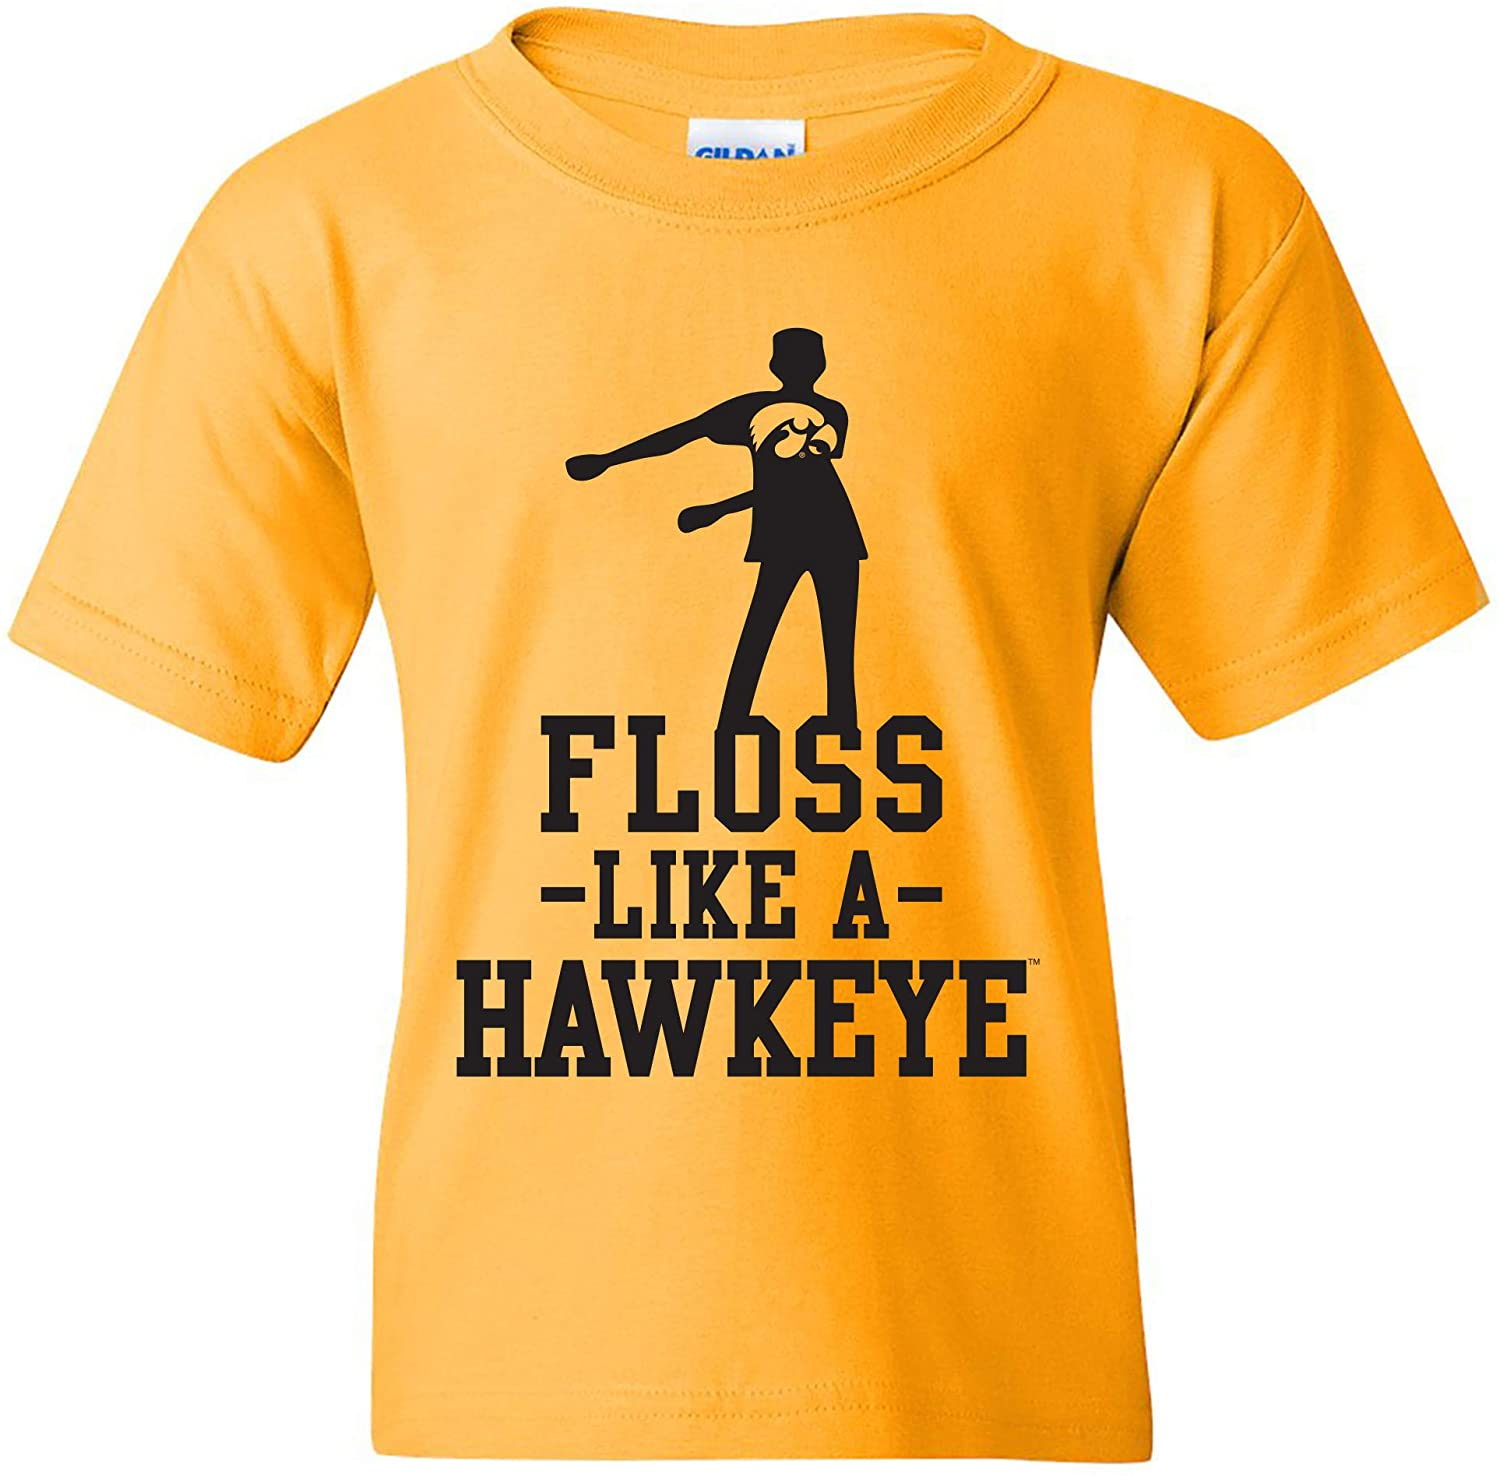 NCAA Floss Like a Mascot, Team Color Youth T Shirt, College, University